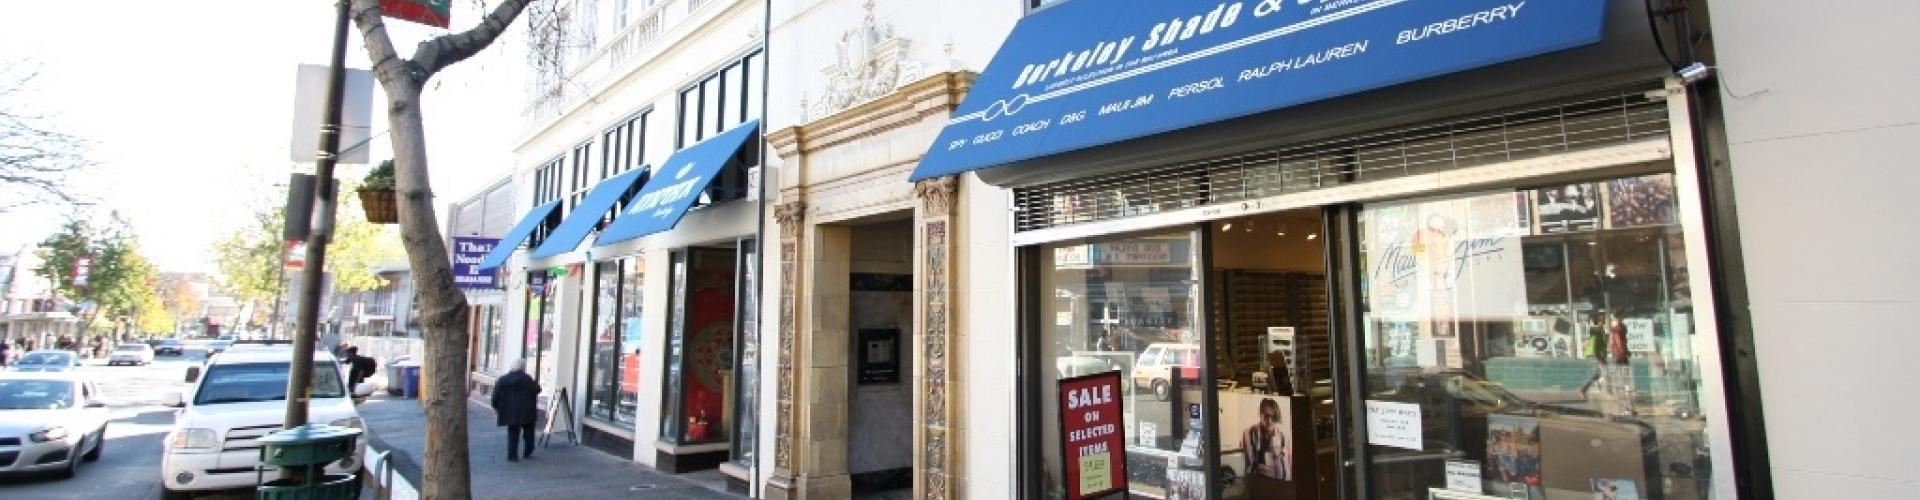 Commercial Properties for Rent, Oakland and Berkeley